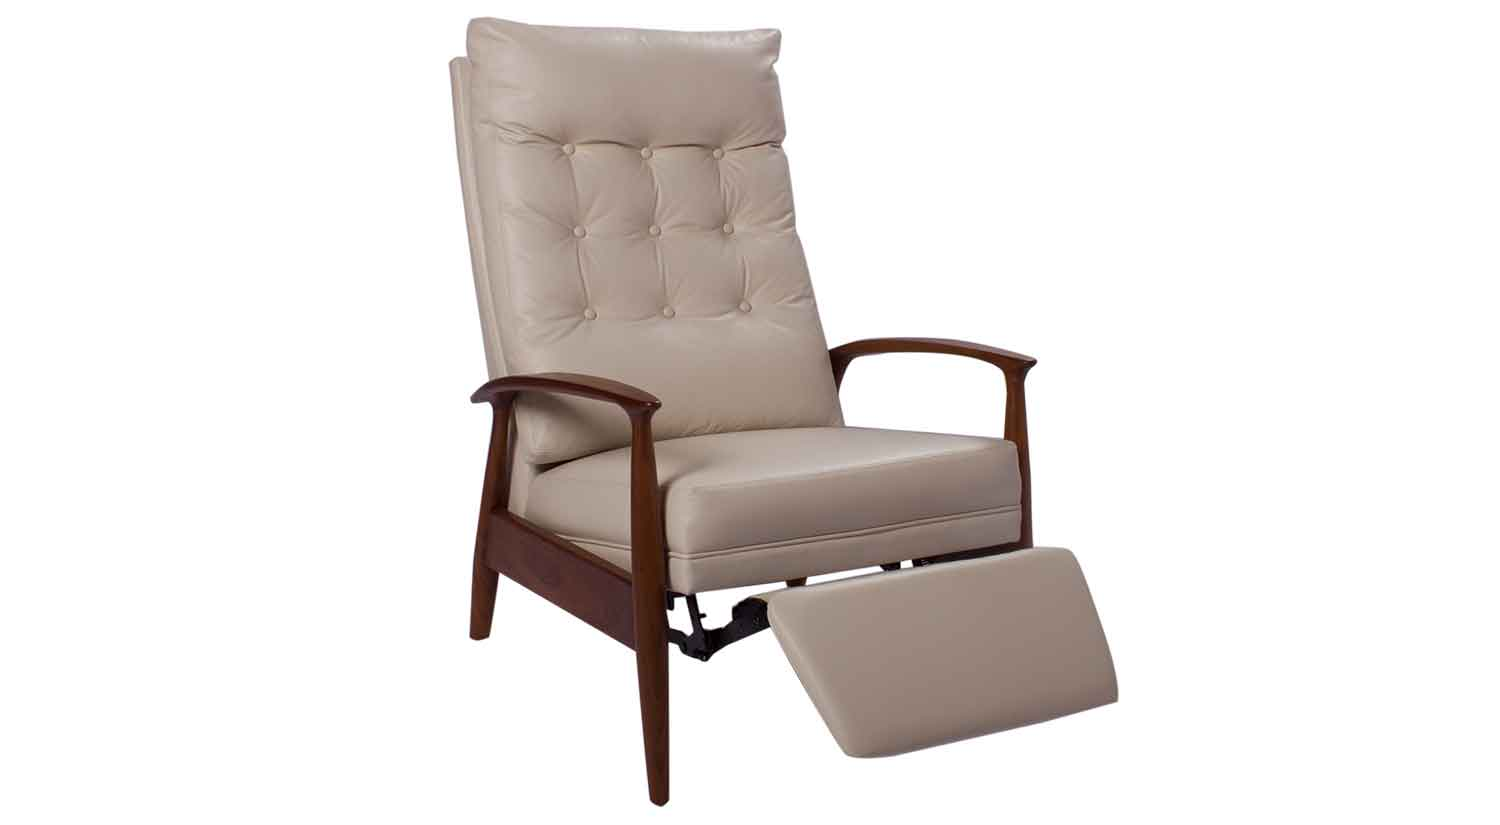 Circle Furniture  Viceroy Recliner  Modern Recliners MA